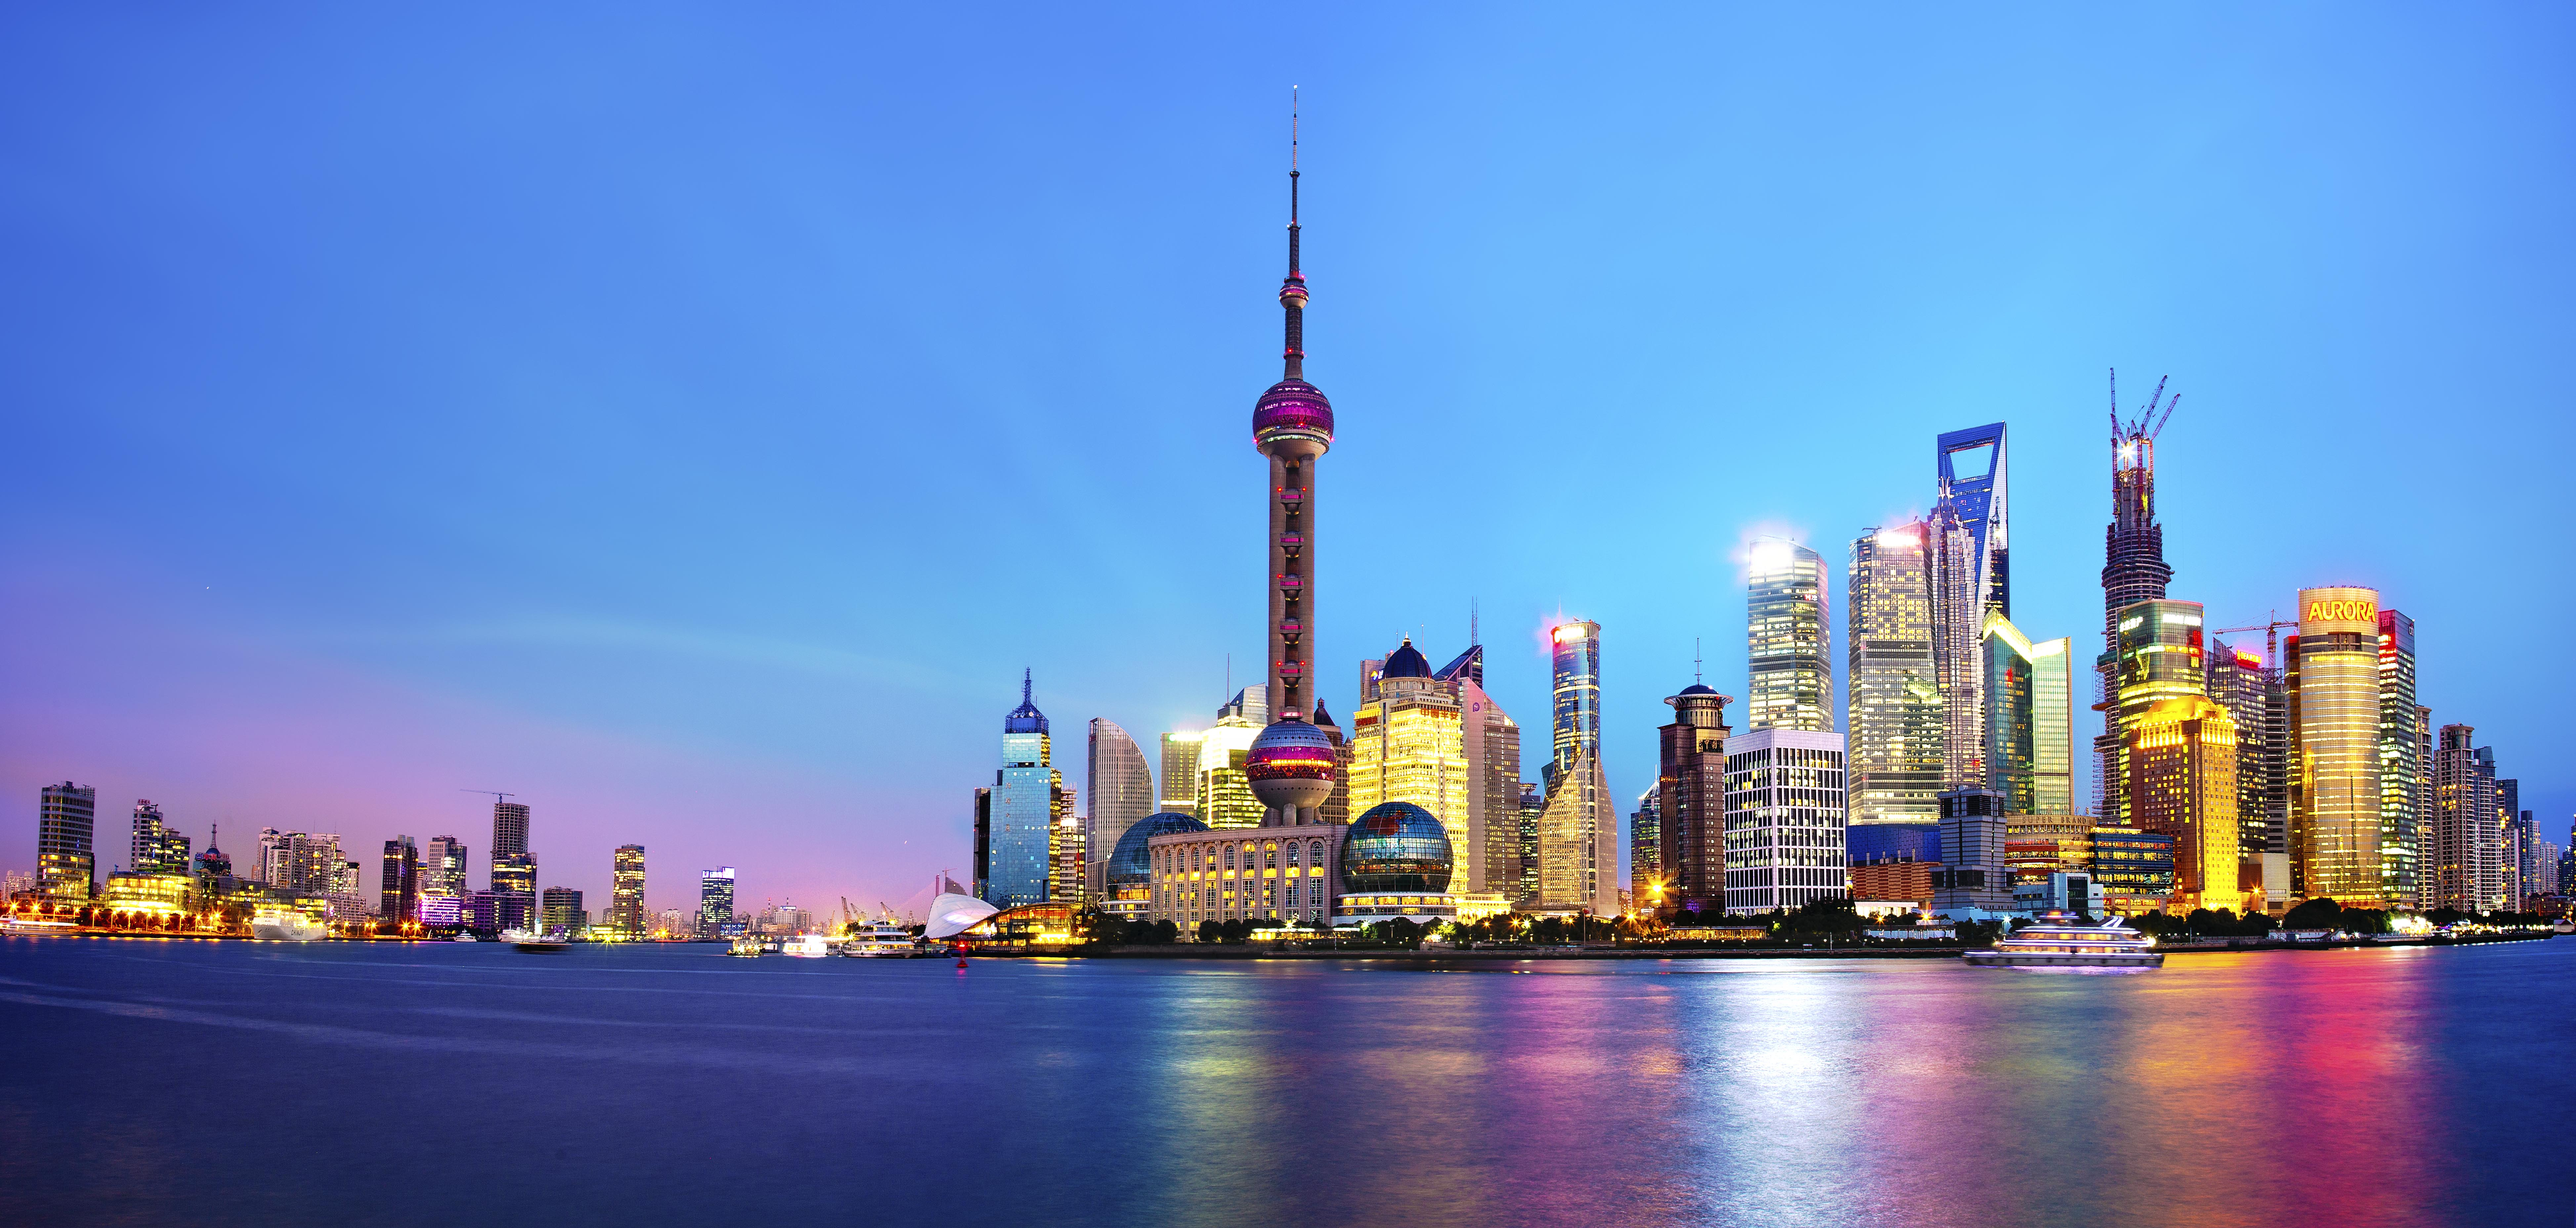 83 Shanghai HD Wallpapers | Backgrounds - Wallpaper Abyss